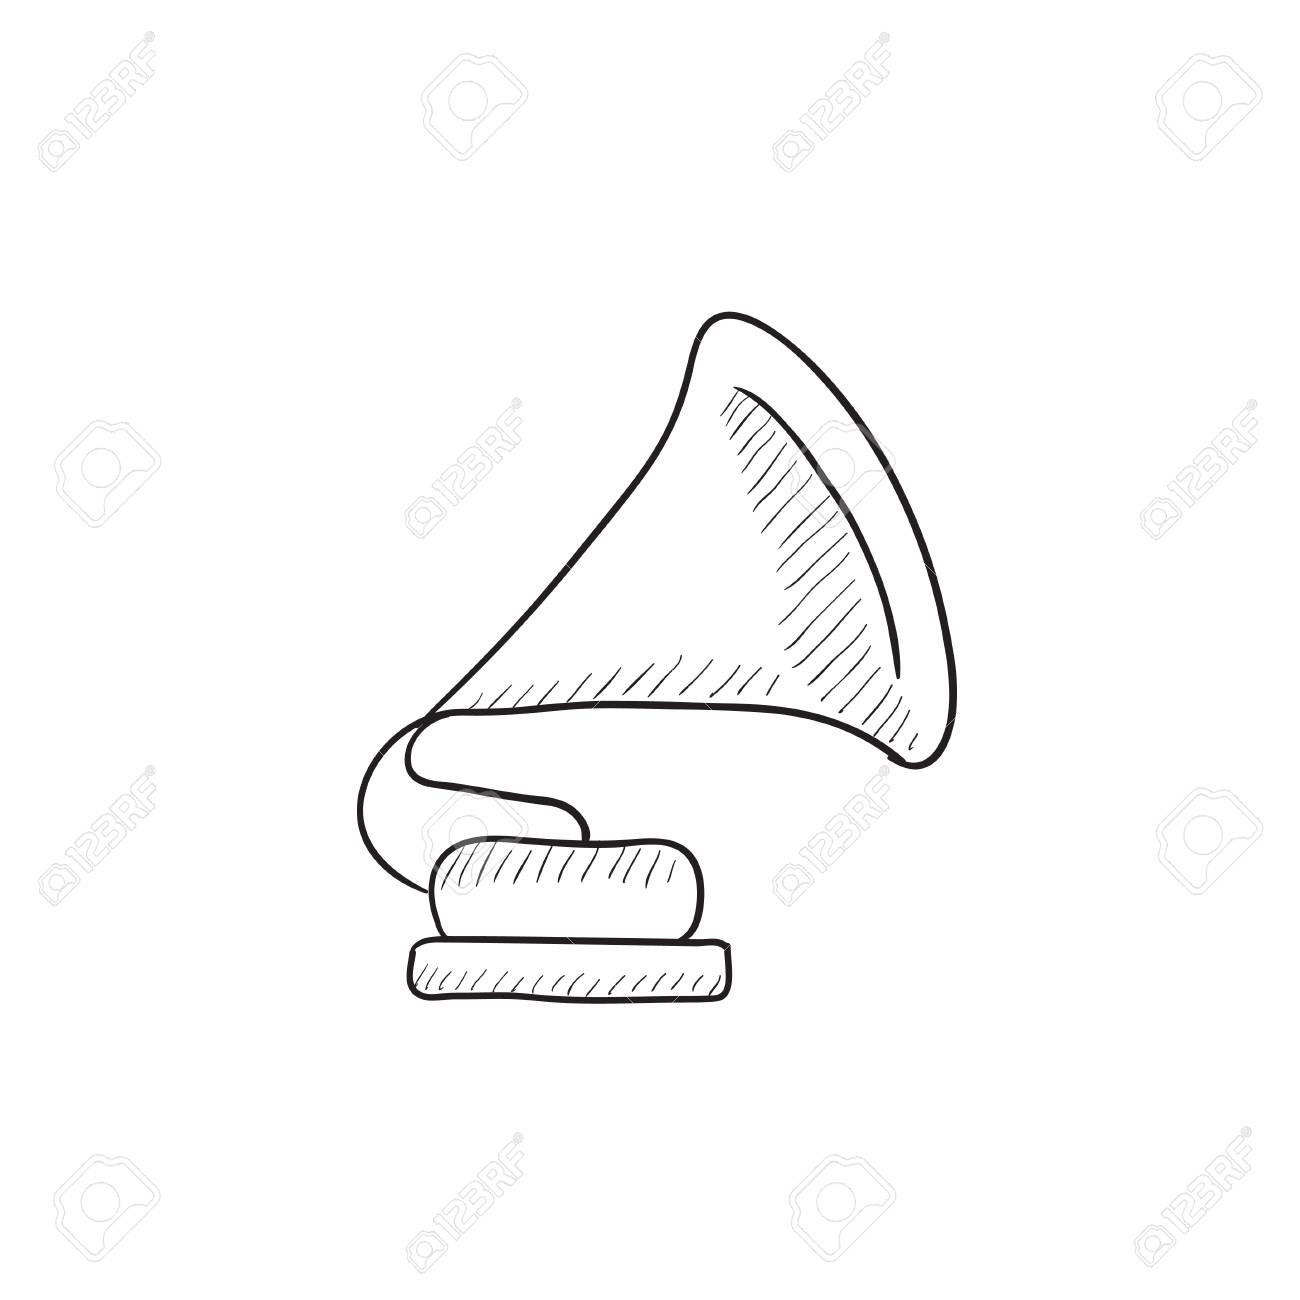 gramophone vector sketch icon isolated on background hand drawn royalty free cliparts vectors and stock illustration image 57888161 123rf com